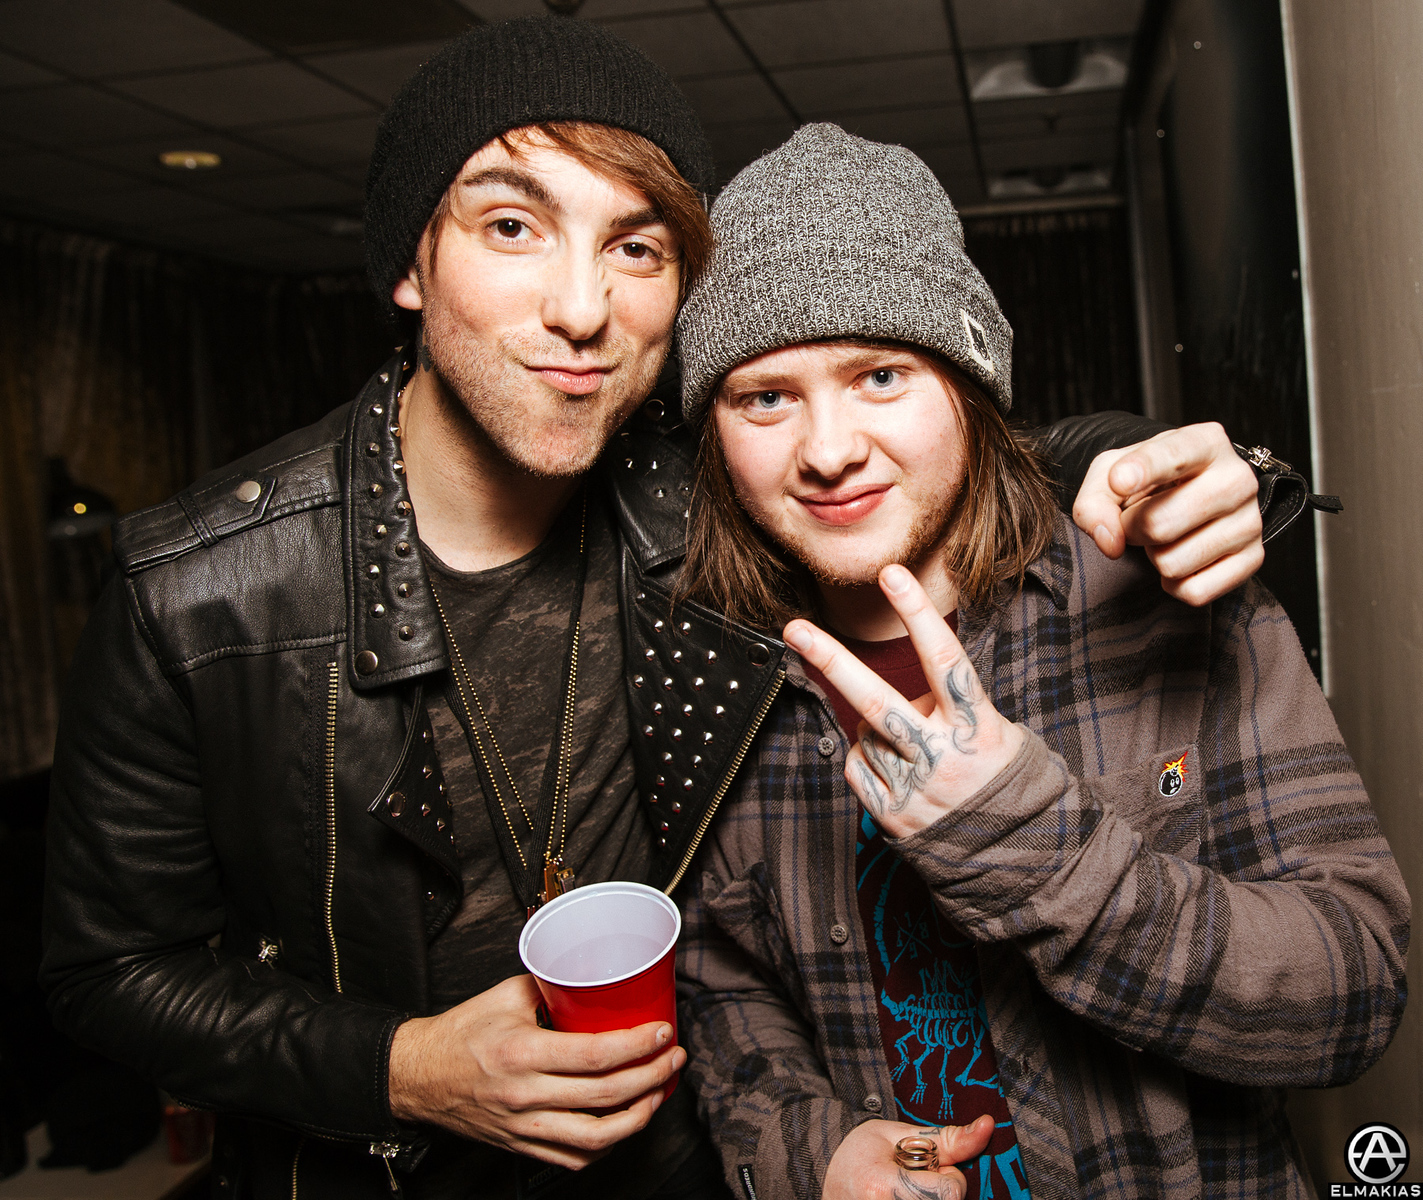 Alex with Lee of Bring Me The Horizon